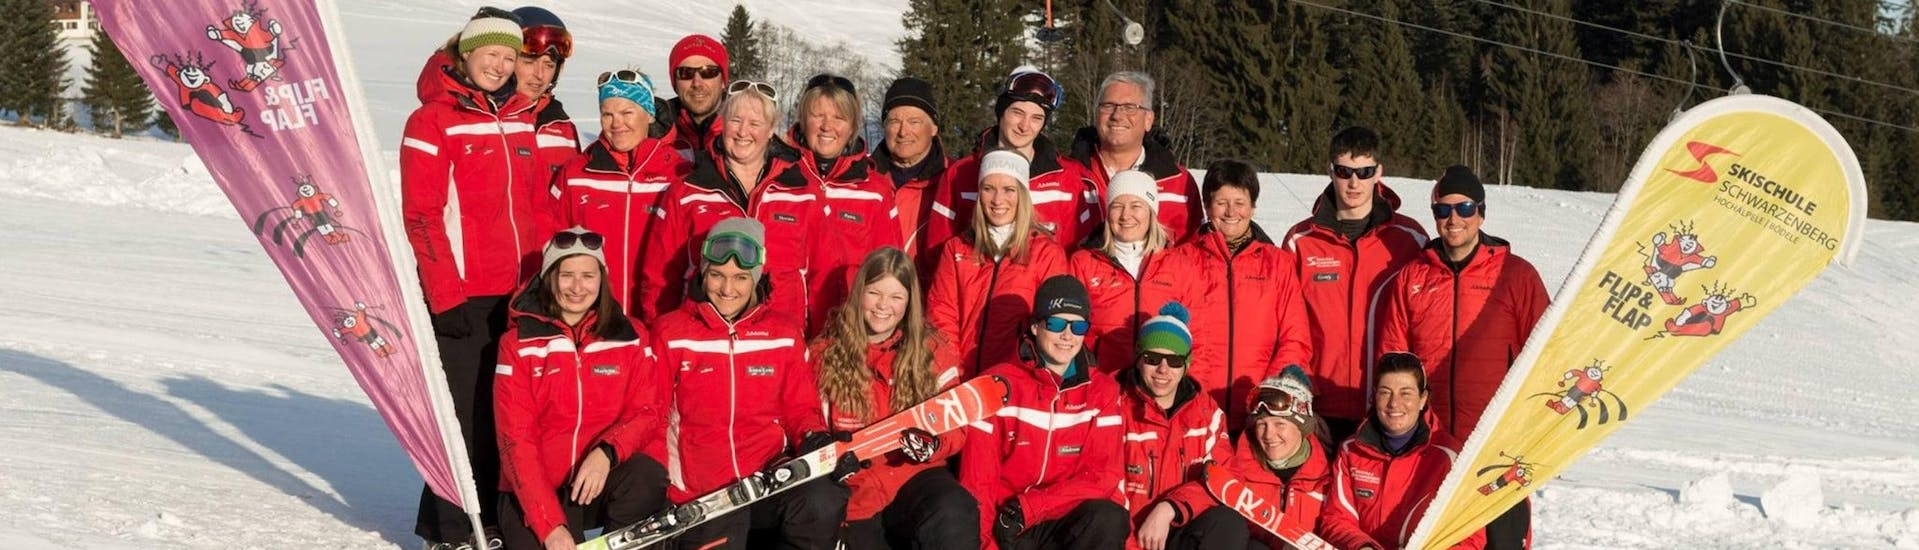 A group photo of the ski instructors from Skischule Schwarzenberg am Bödele who all look forward to welcoming guests to their ski lessons.